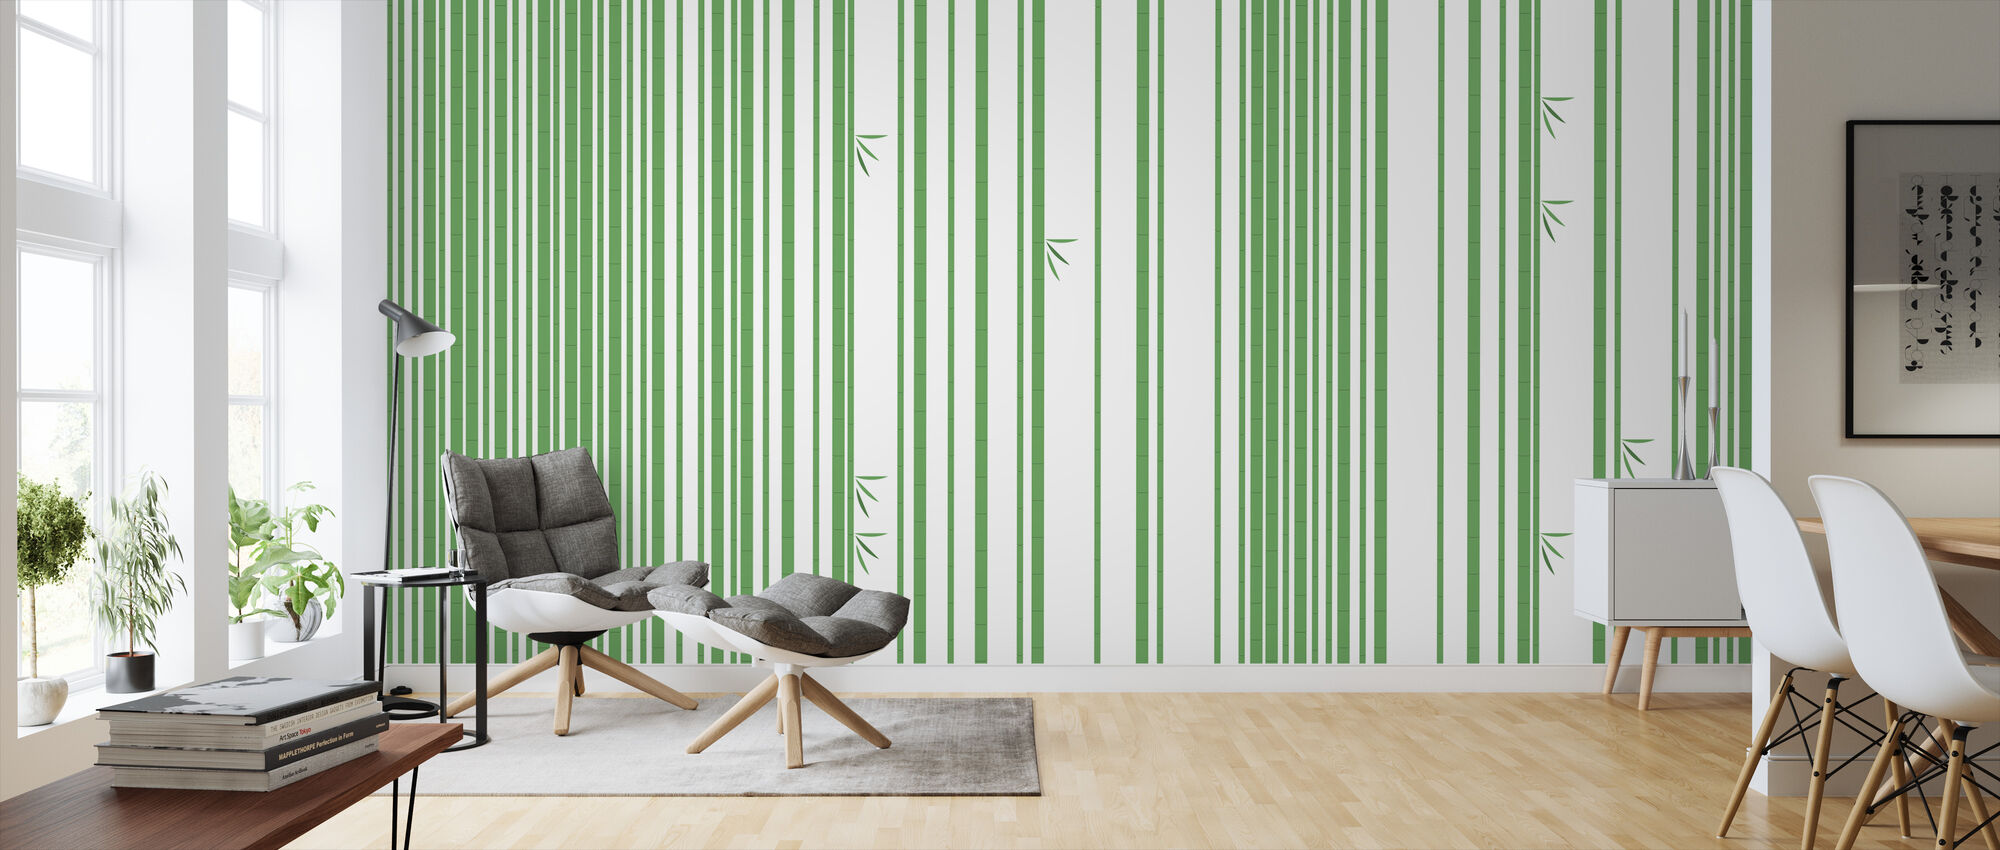 Bambu Forest Green - Wallpaper - Living Room